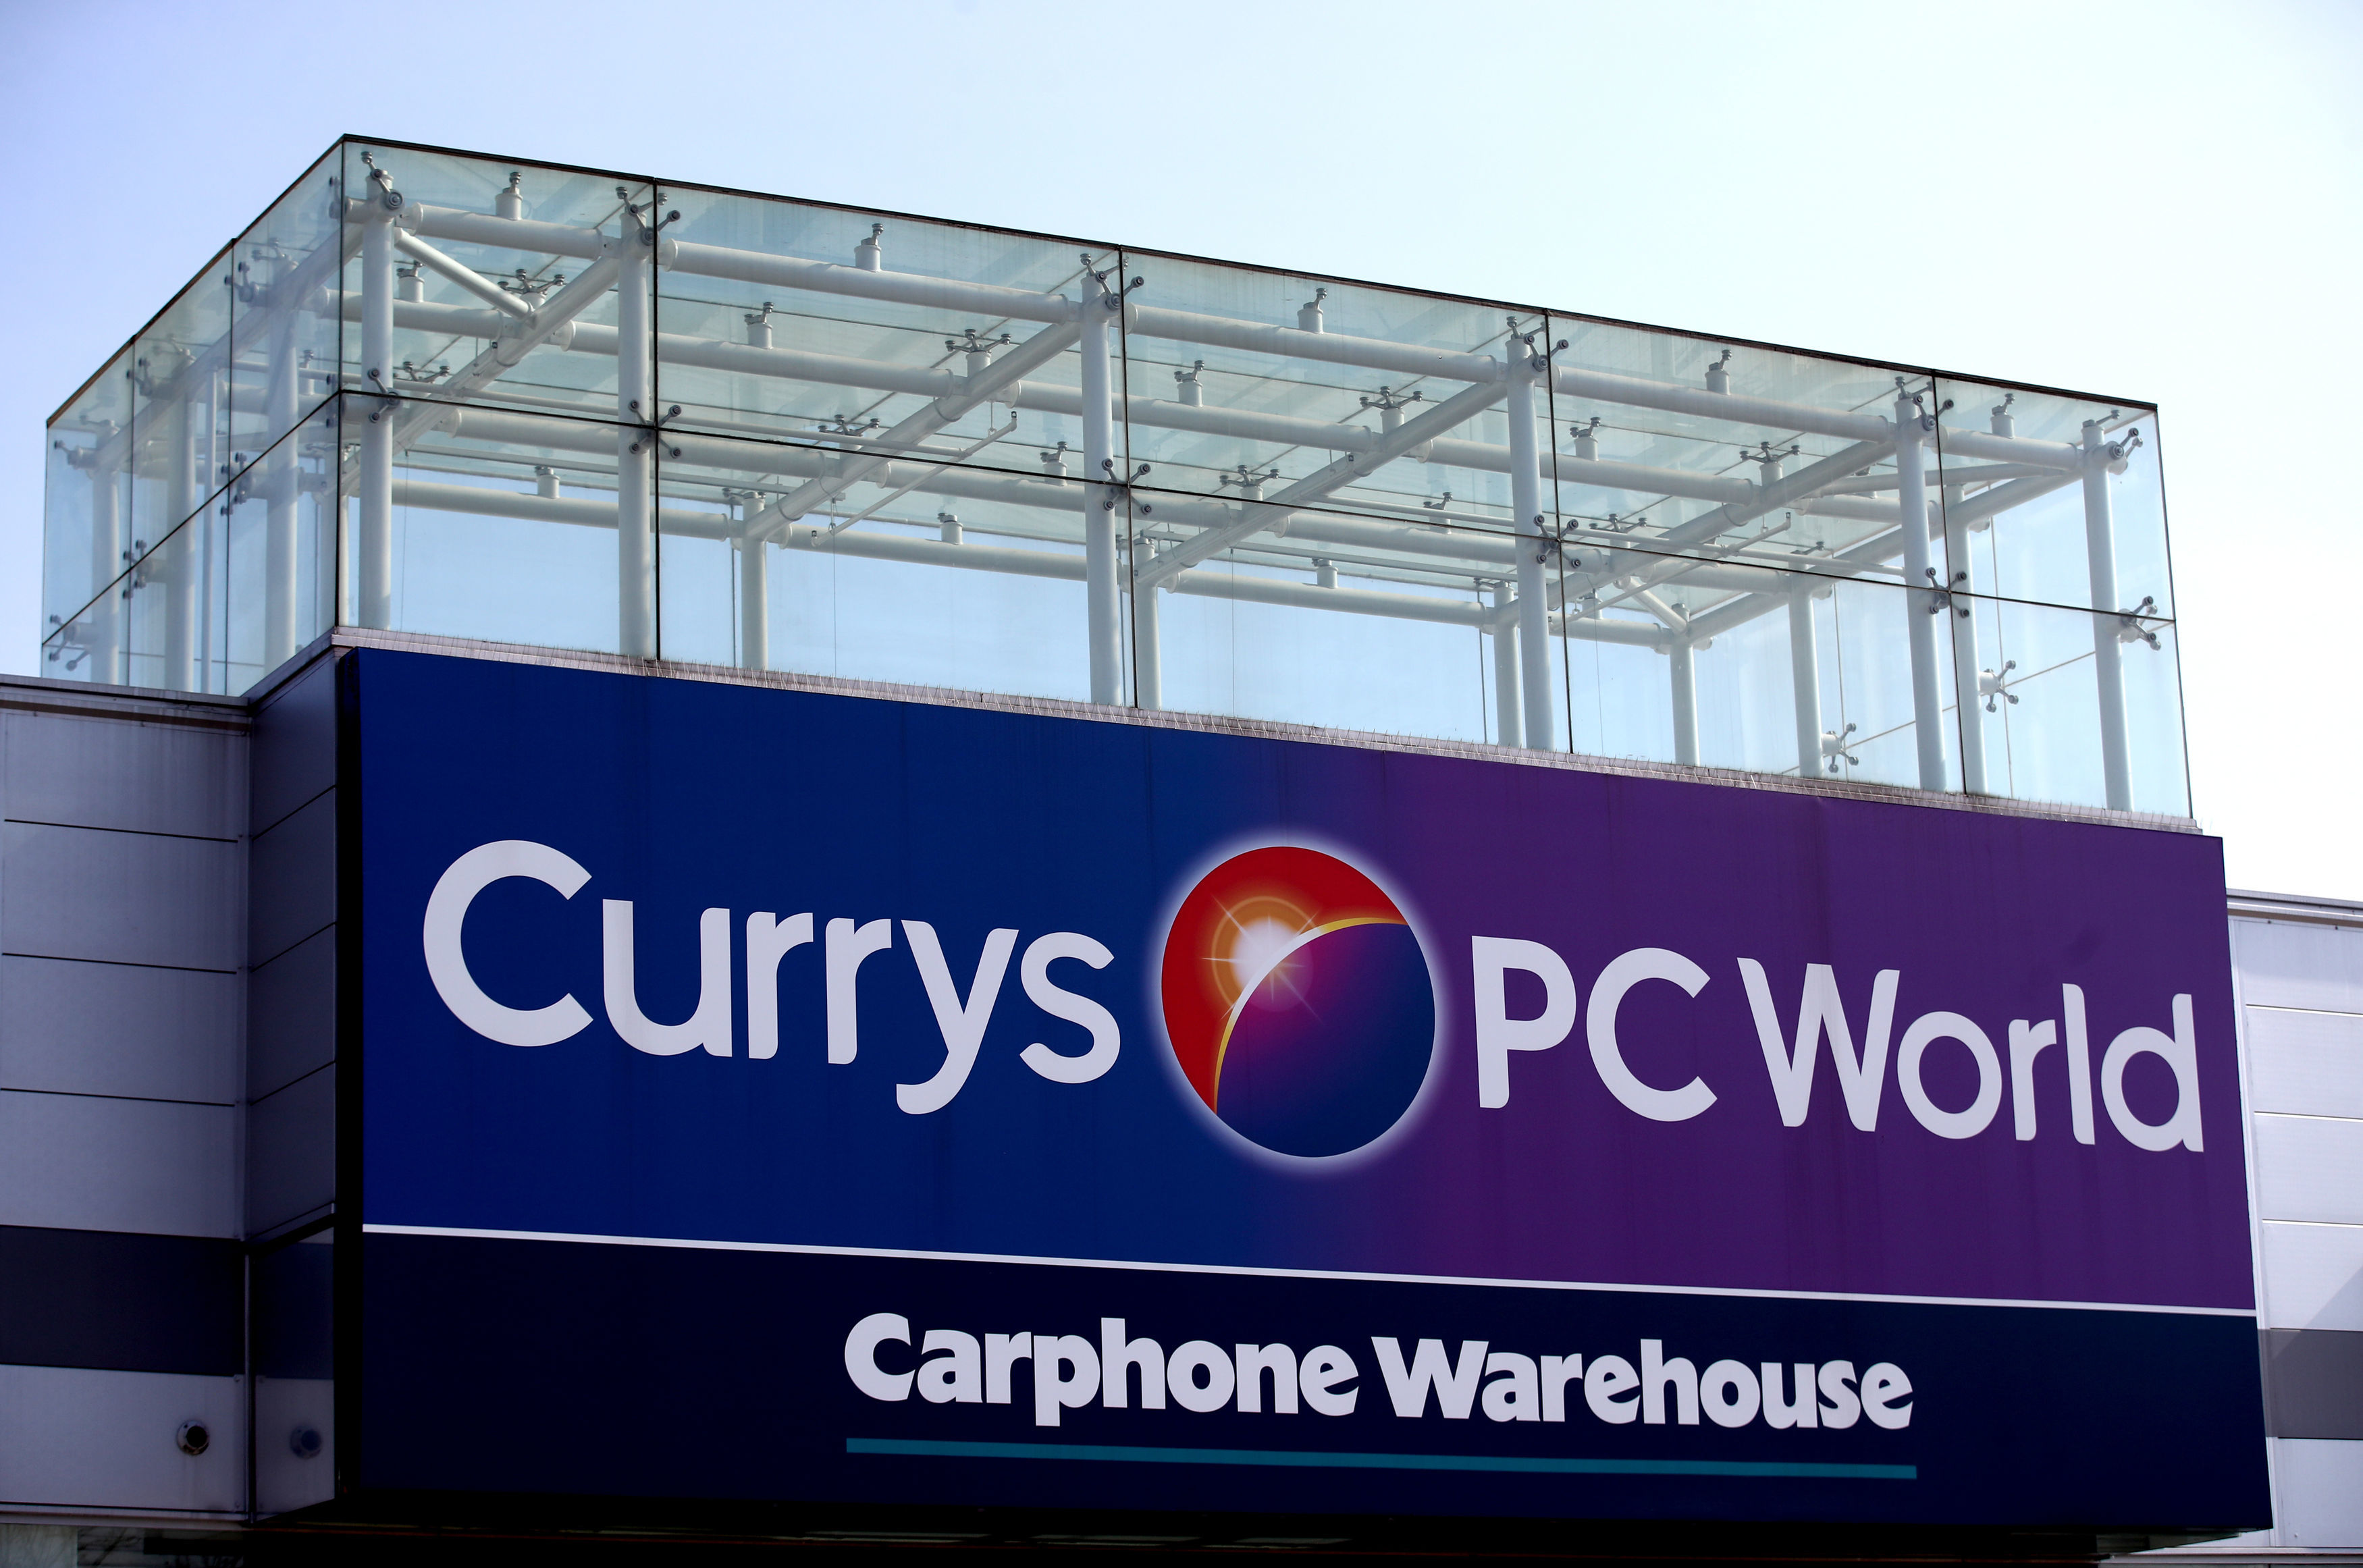 Most Currys PC World stores remain open for click and collect